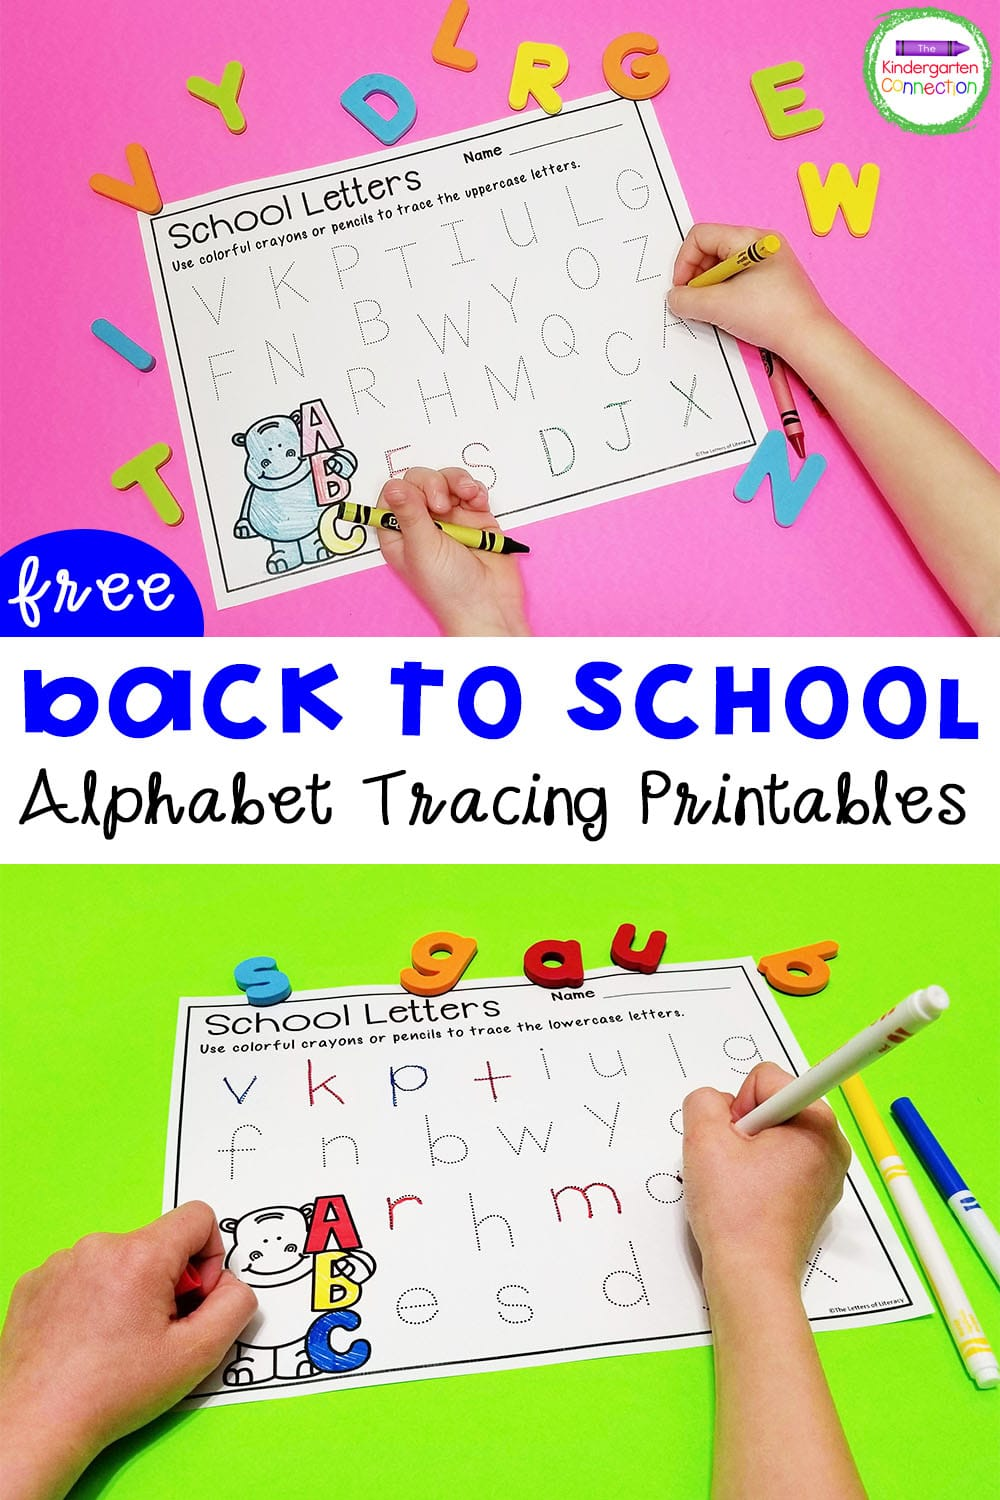 Work on letter recognition and formation with these fun and free Back to School alphabet tracing printables for Pre-K & Kindergarten!